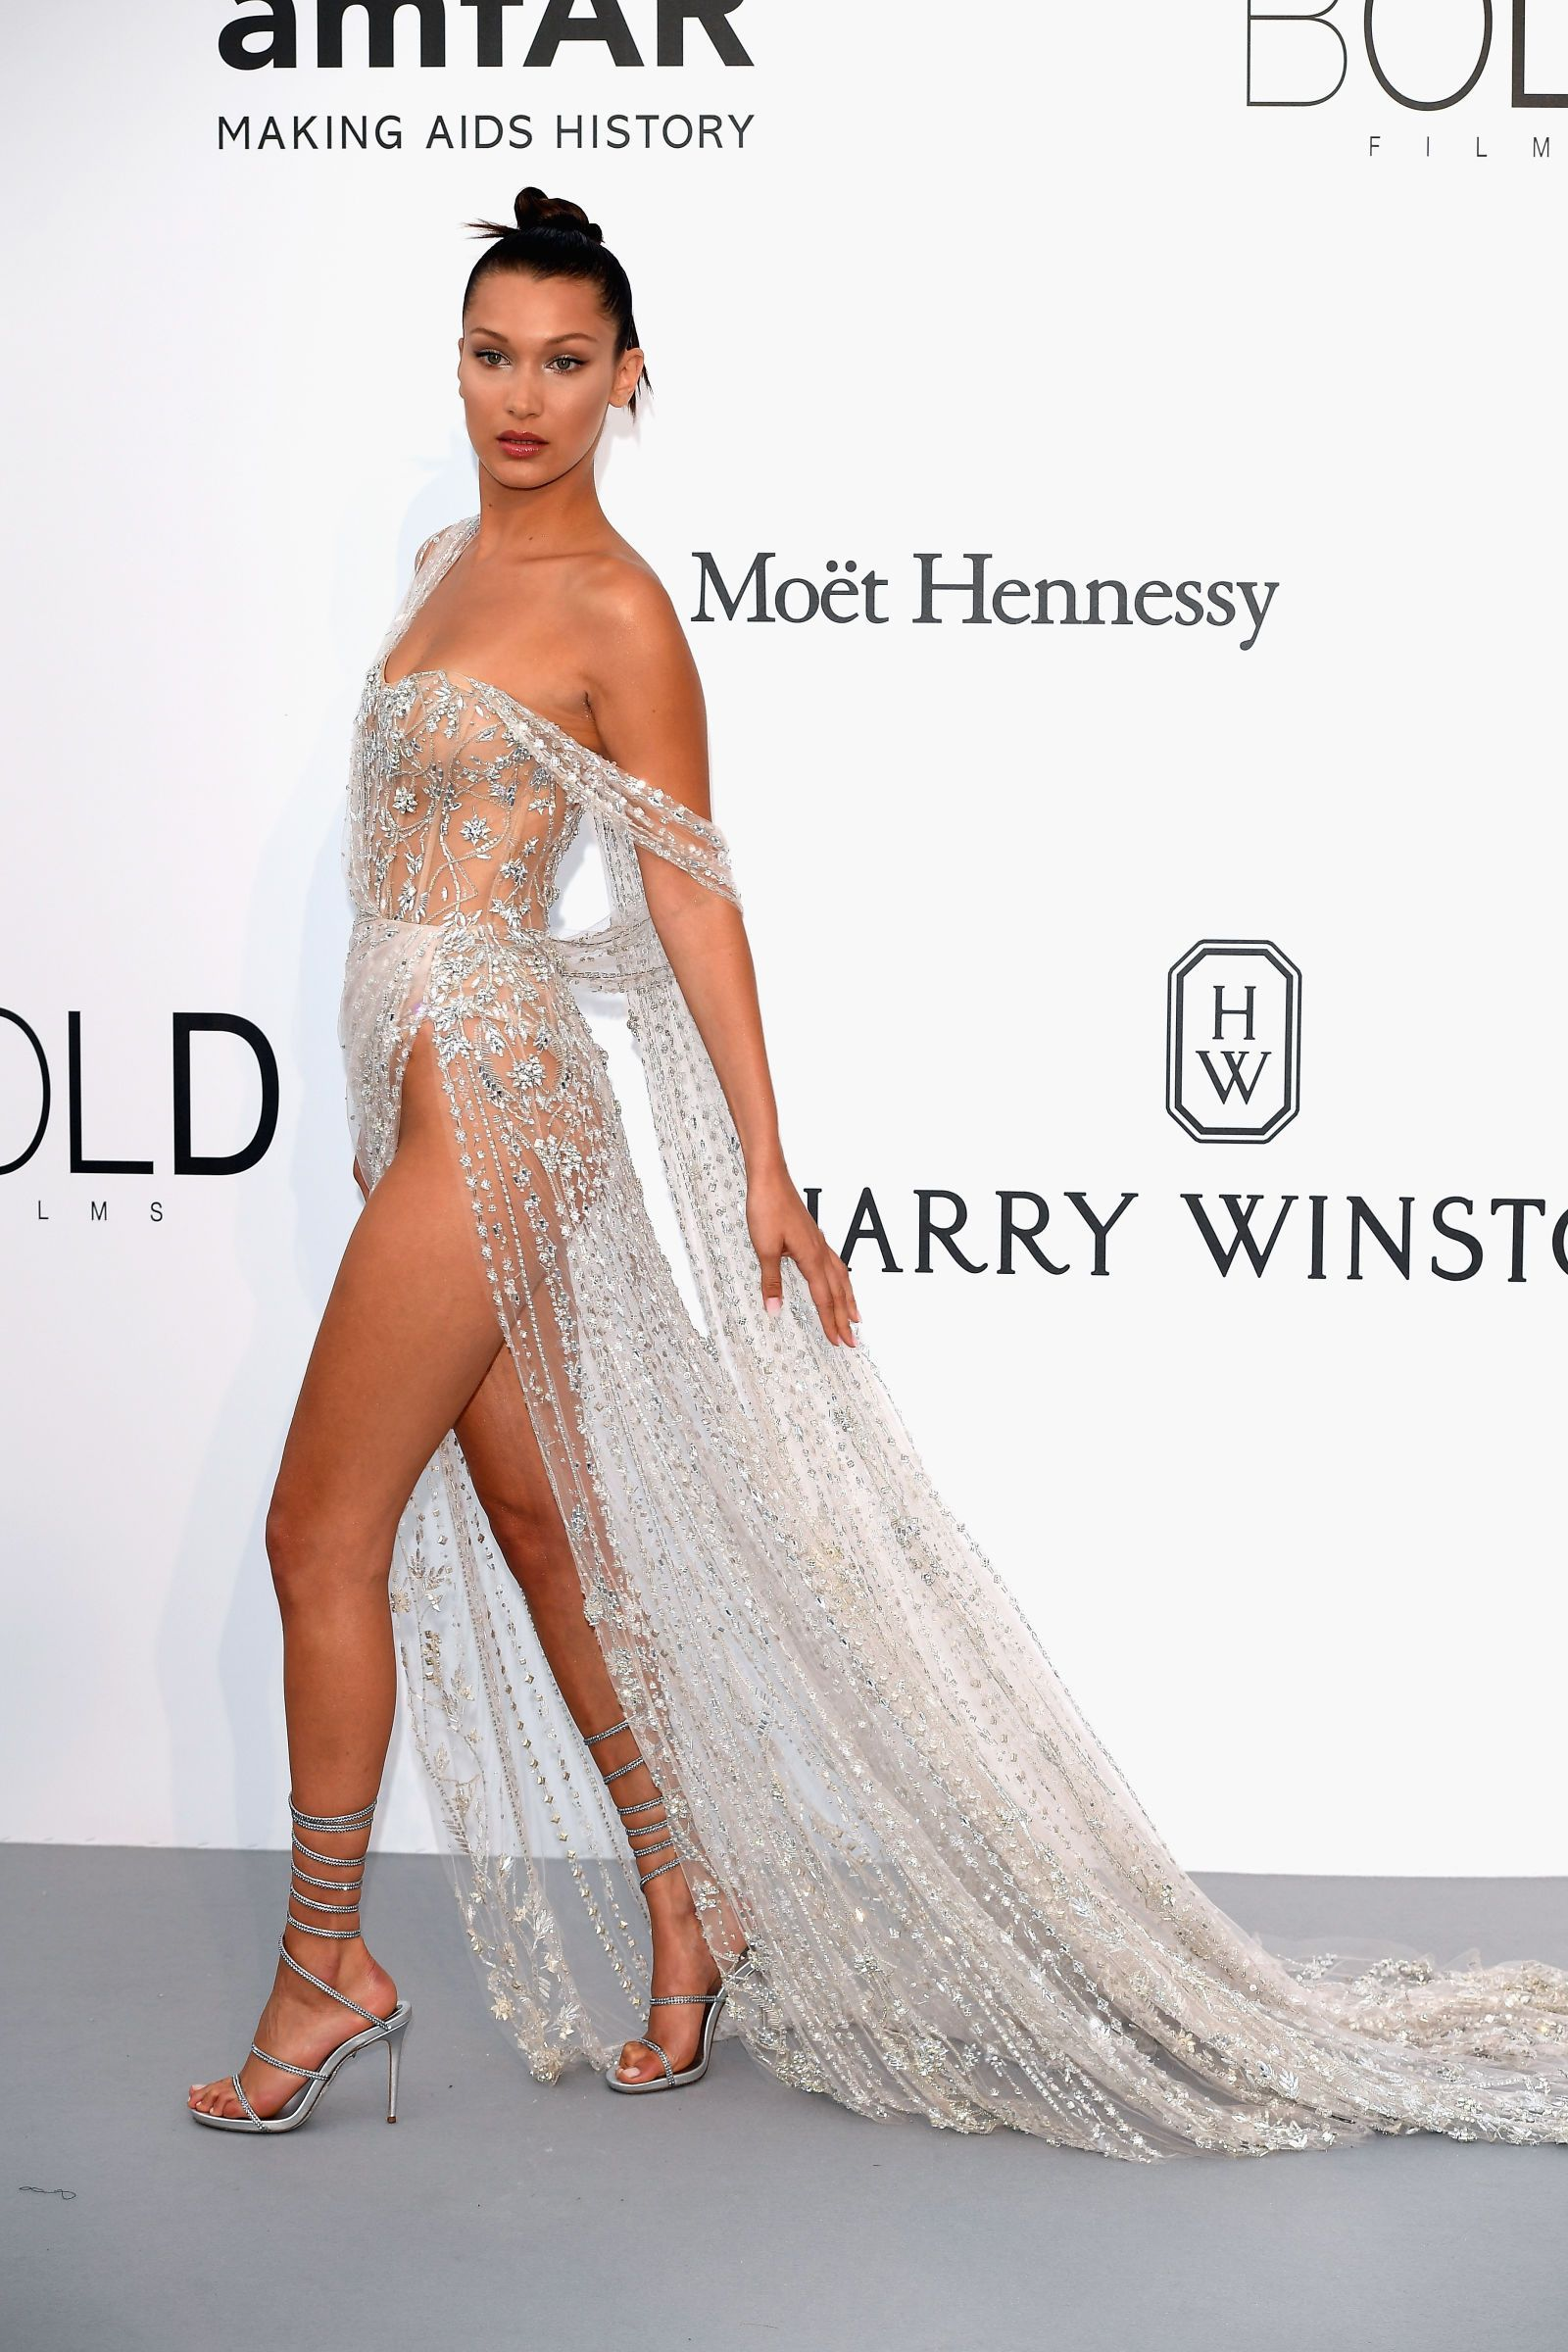 The Most Naked Dresses on The Cannes Red Carpet forecasting